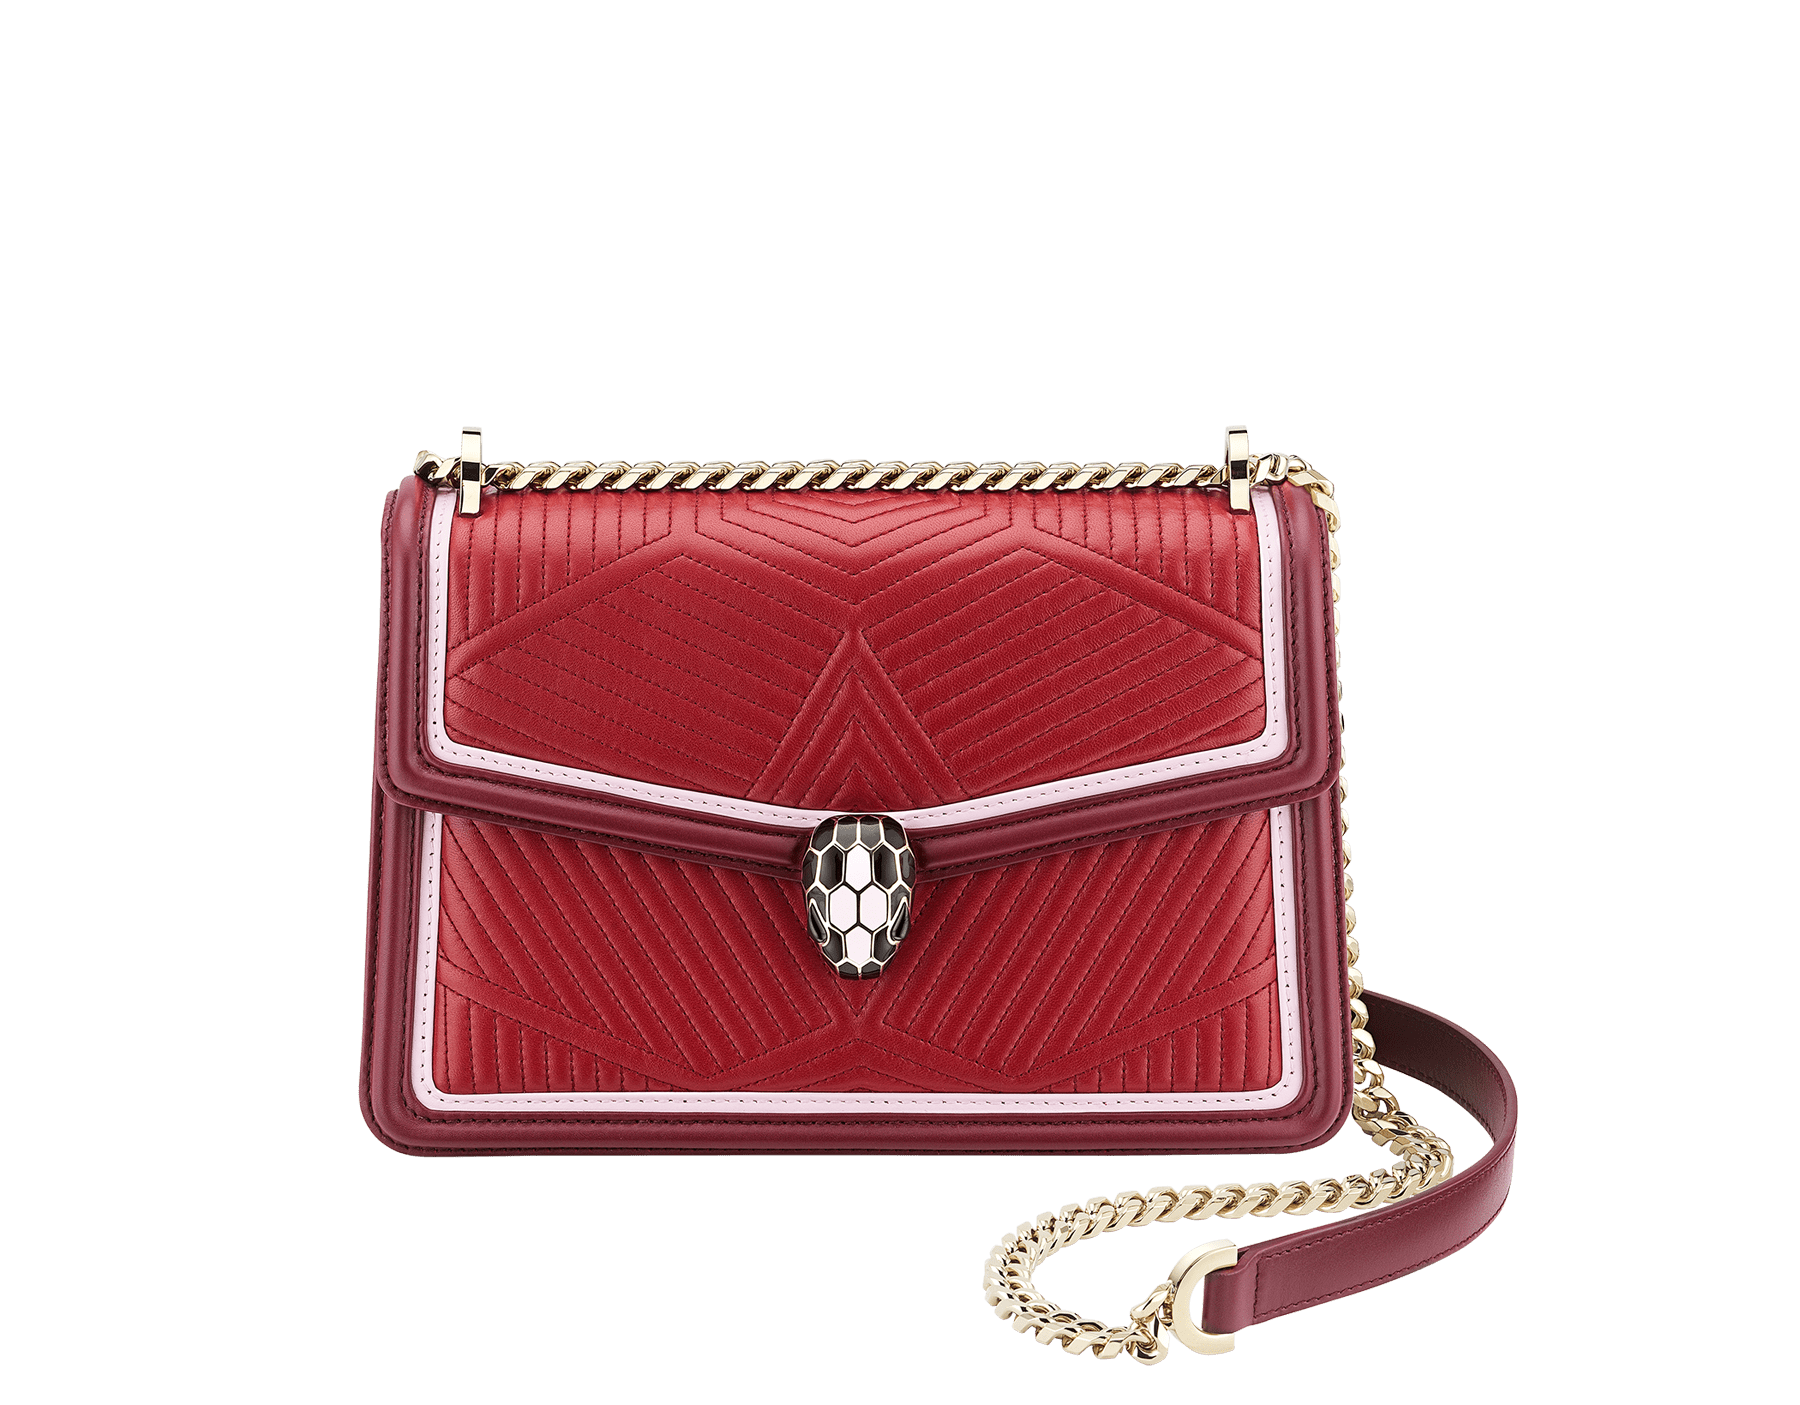 """Serpenti Diamond Blast"" shoulder bag in ruby red quilted calf leather and Roman garnet calf leather frames. Iconic snakehead closure in light gold plated brass enriched with black and rosa di francia enamel and black onyx eyes. 289463 image 1"